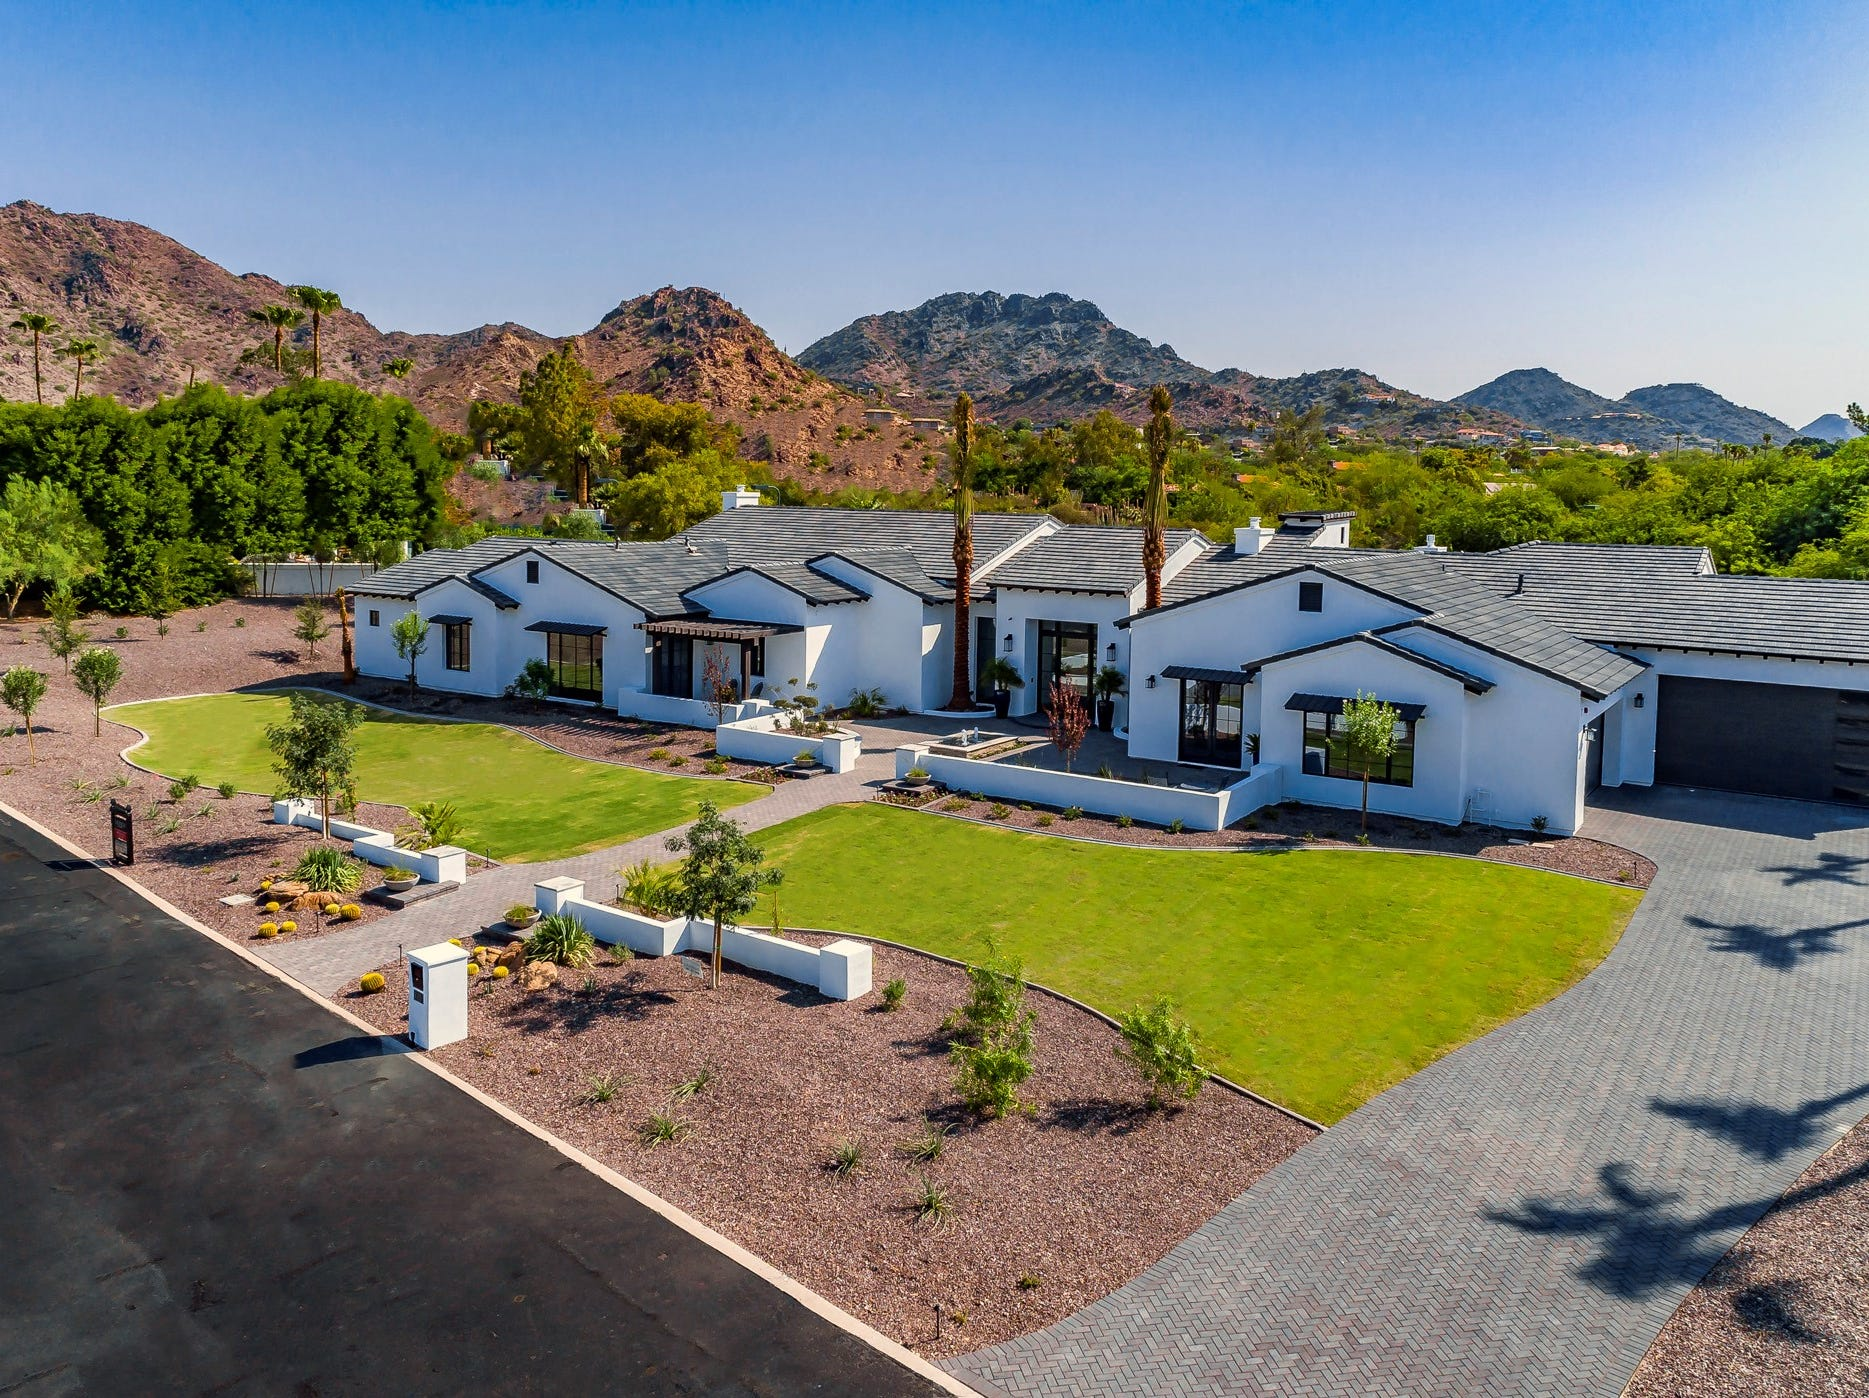 Oliver Ekman-Larsson, captain and defenseman for the Arizona Coyotes, purchased this contemporary-style mansion in Paradise Valley. The 6,425-square-foot house has 5 bedrooms and 7 bathrooms.